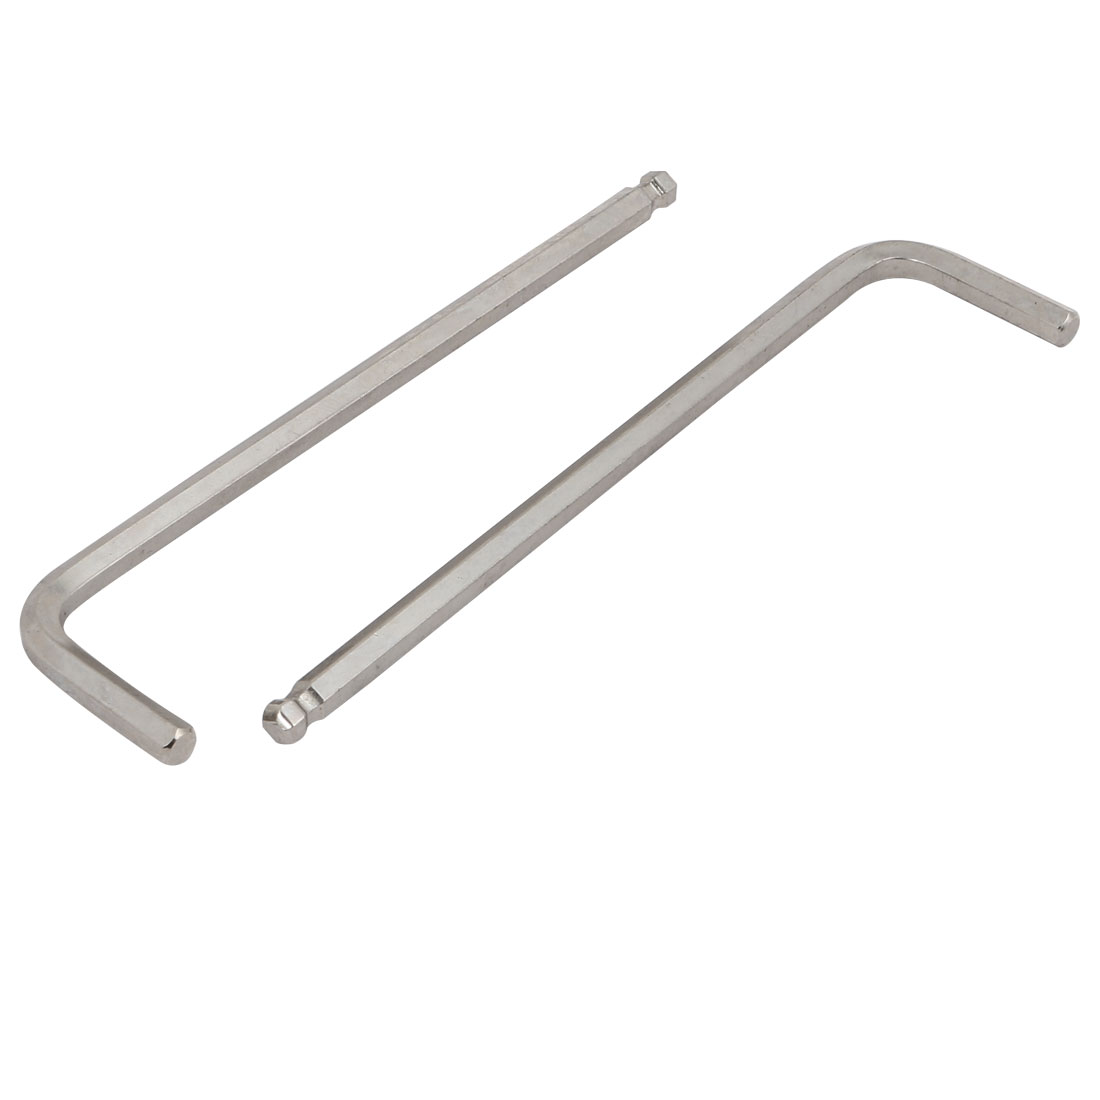 3/16-inch CR-V Steel Long Arm Ball End Point Hex Key L-Wrench 120mm Length 2pcs